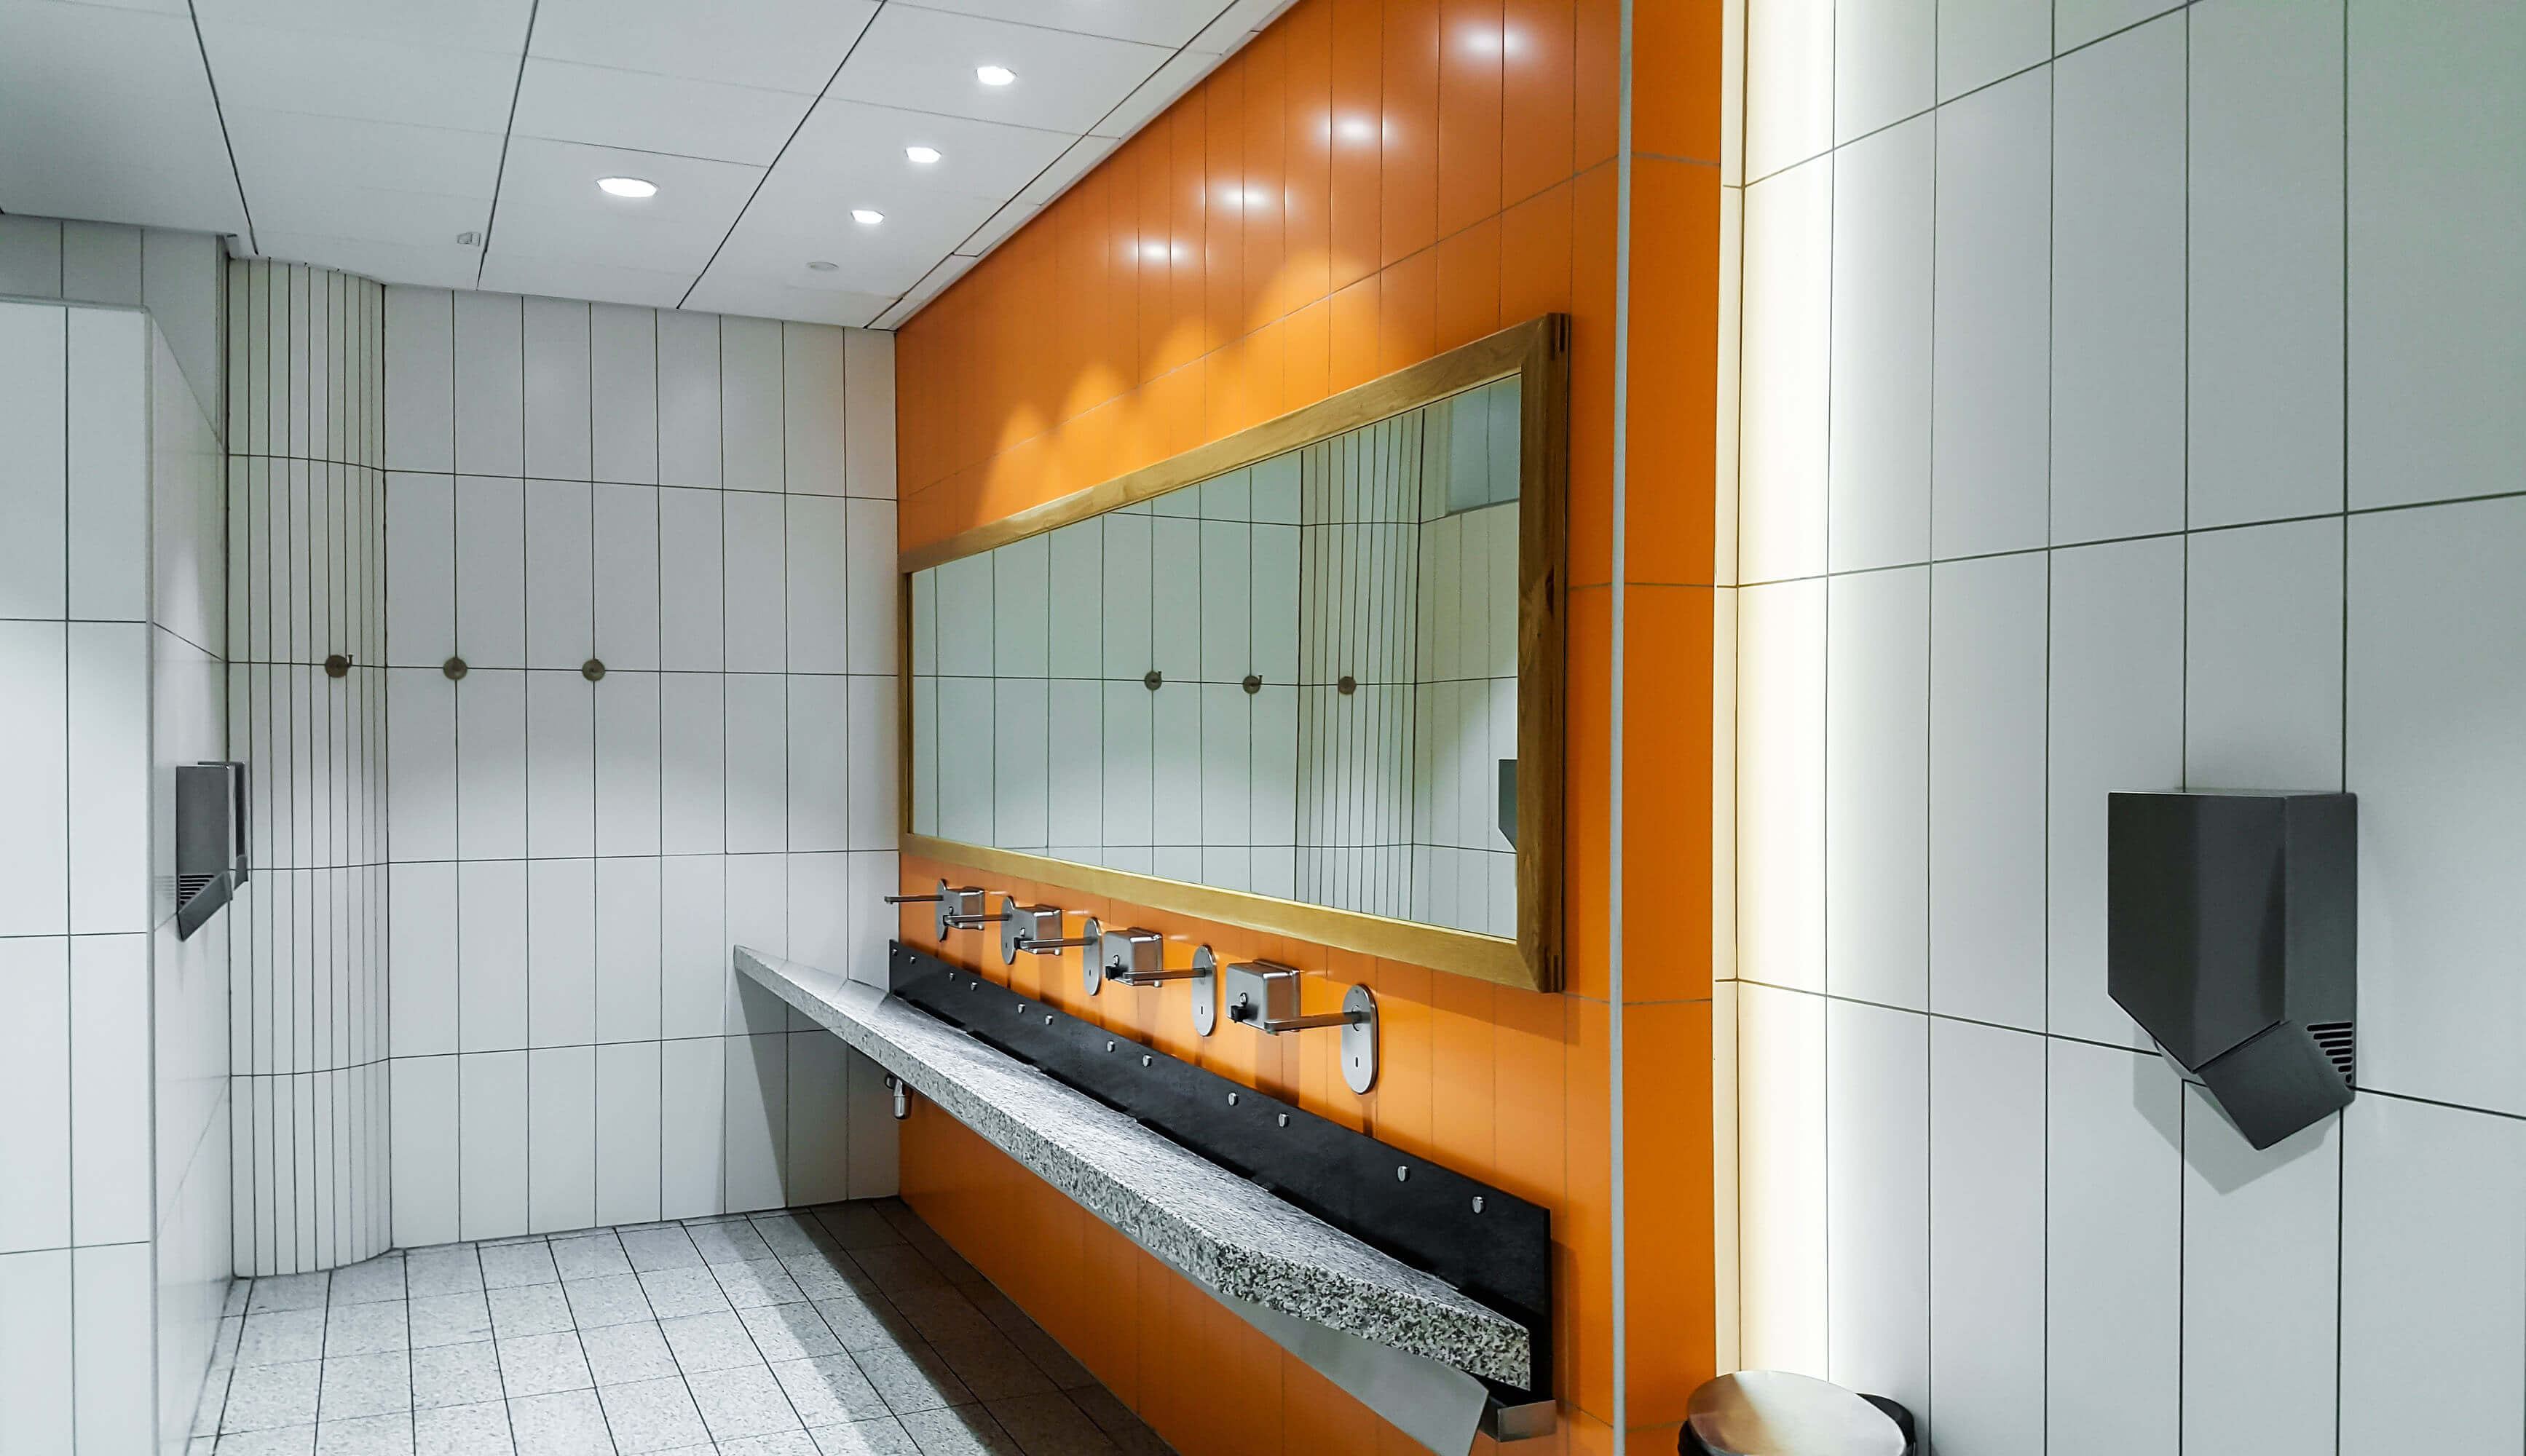 What to Consider When Installing Plumbing Access Panels